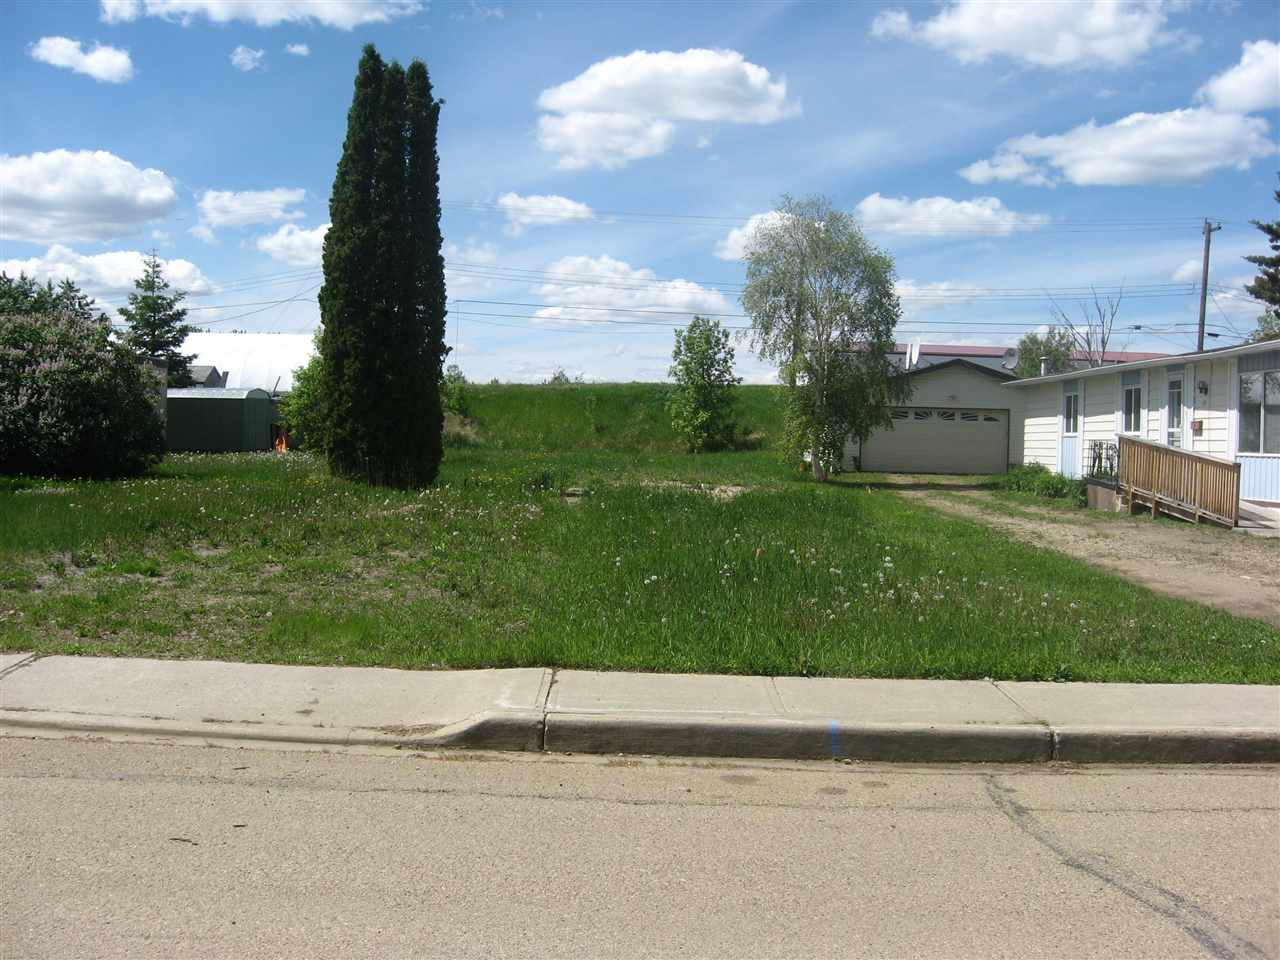 Fully serviced lot that is zoned for mobile homes or built a regular house on this well located lot with back alley and lots of room for a large garage.